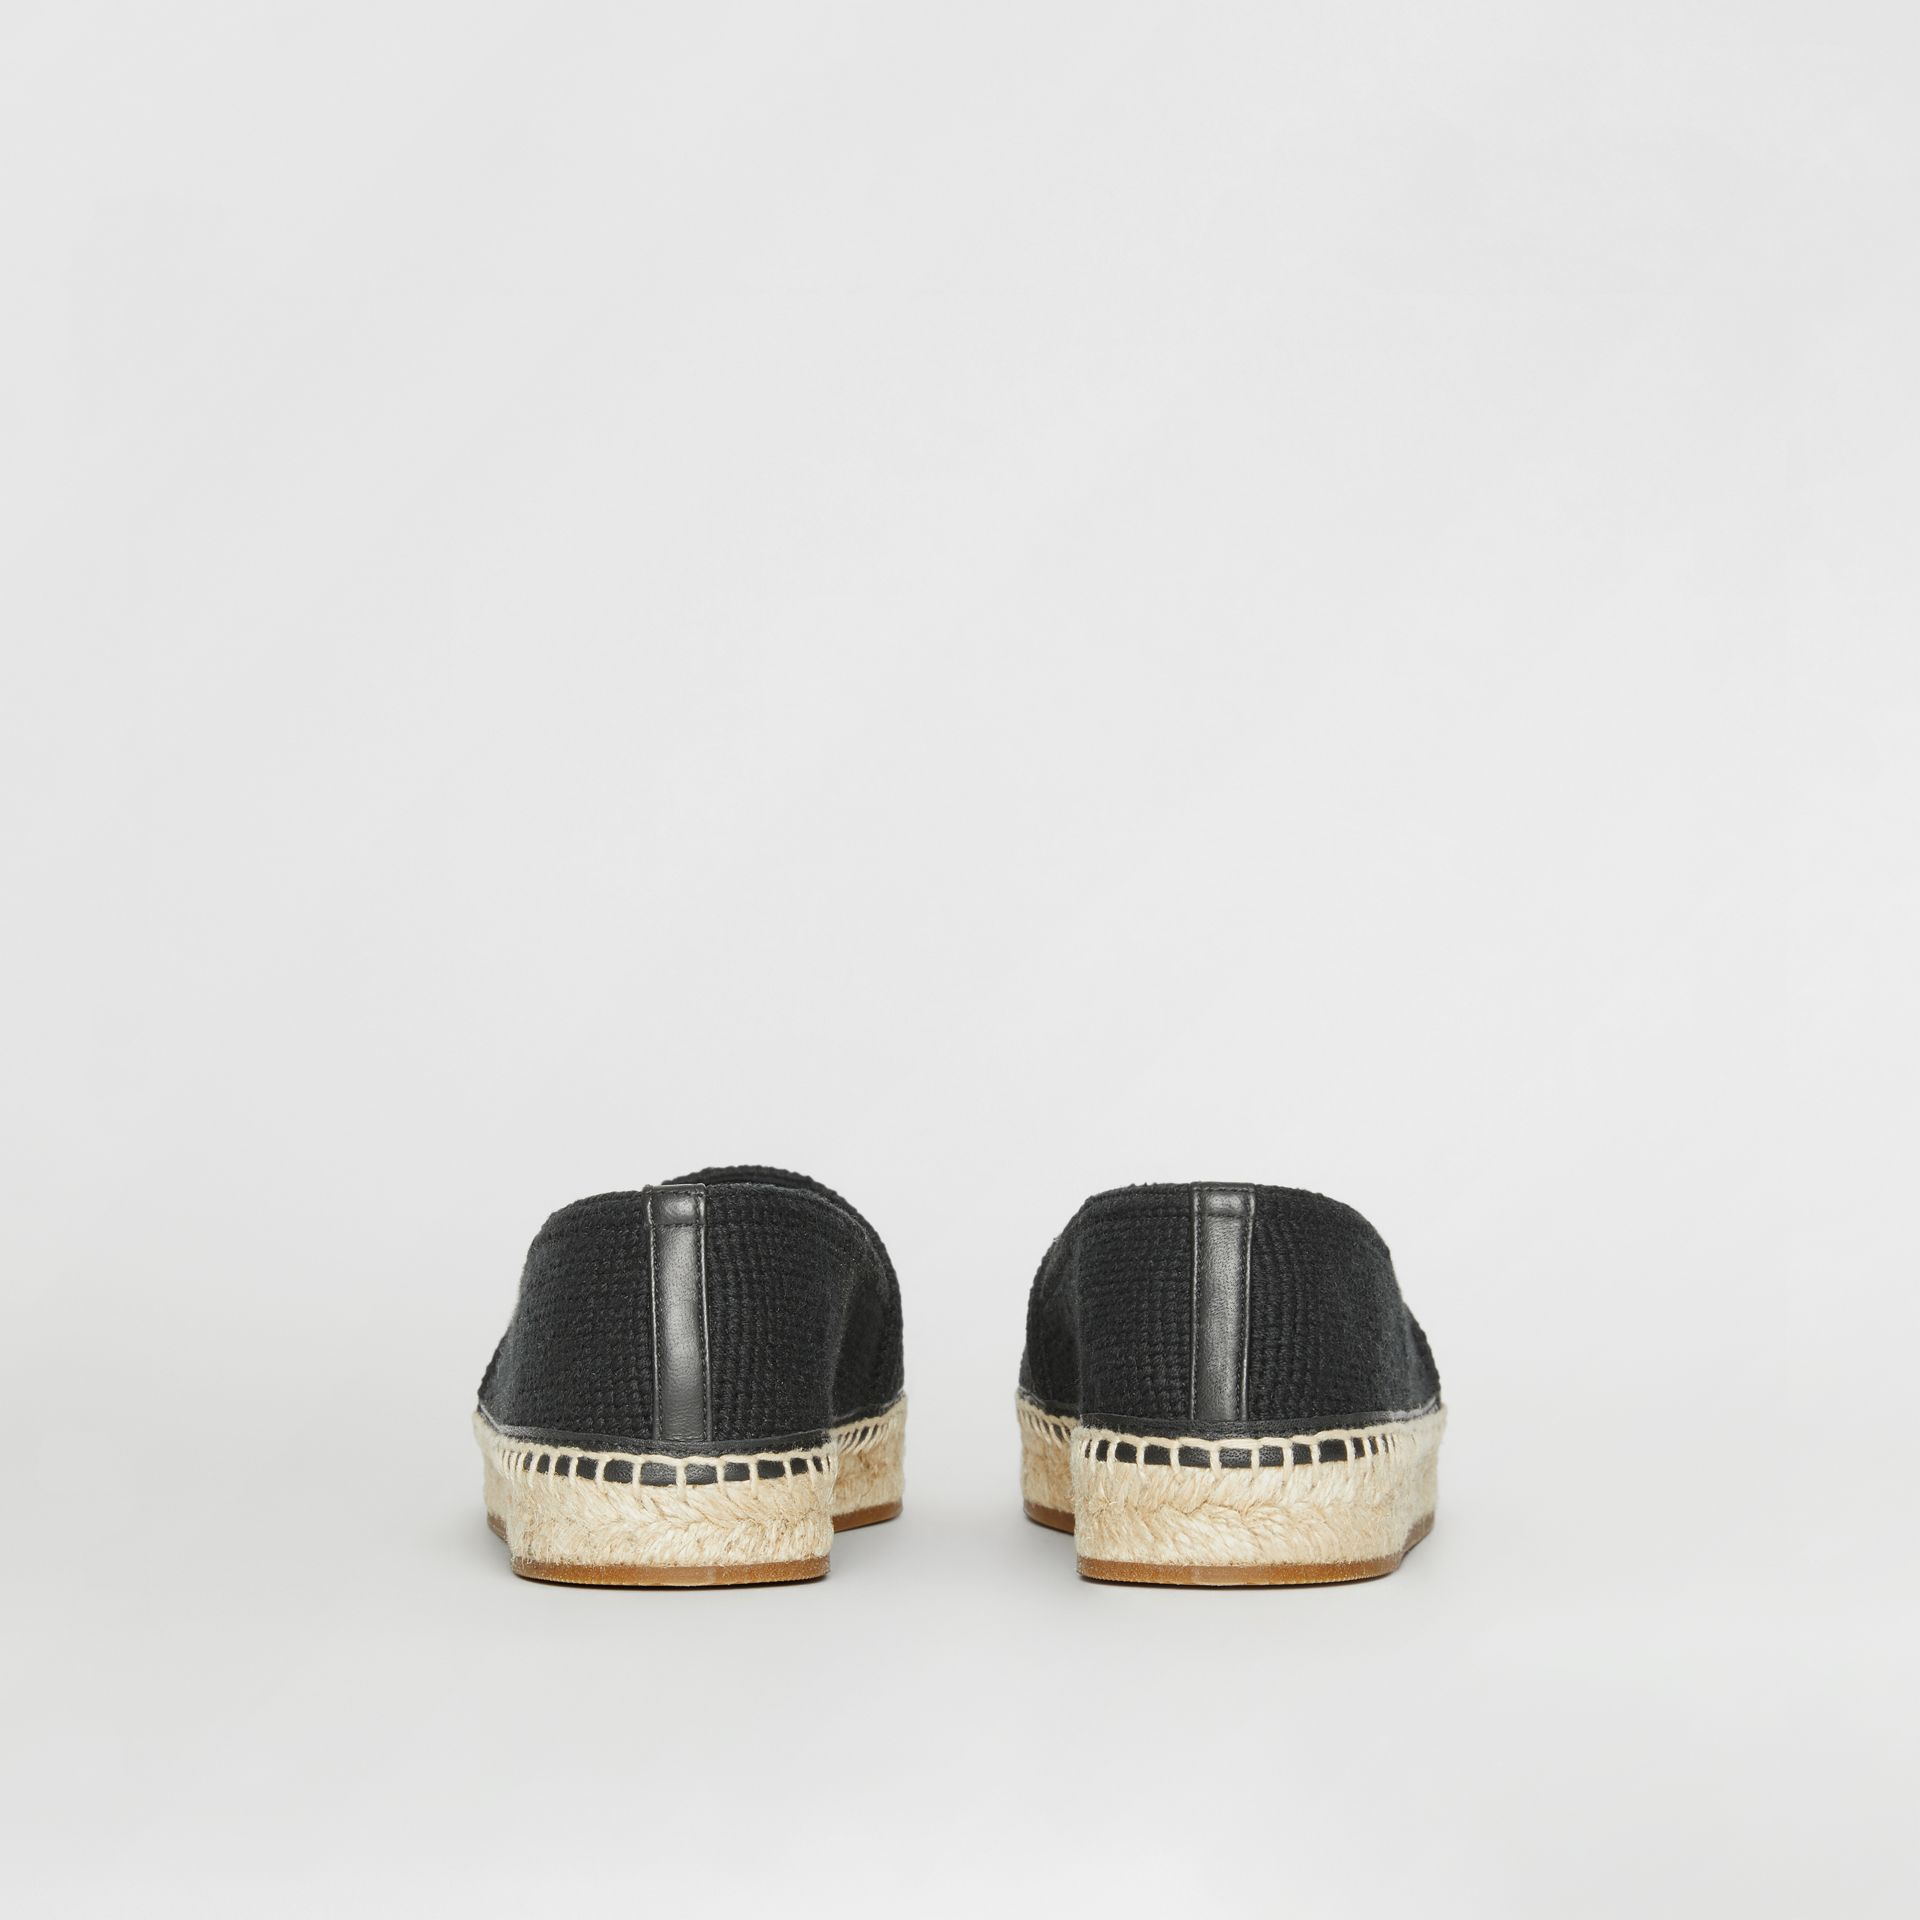 Monogram Motif Cotton and Leather Espadrilles in Black/ecru - Women | Burberry Australia - gallery image 4